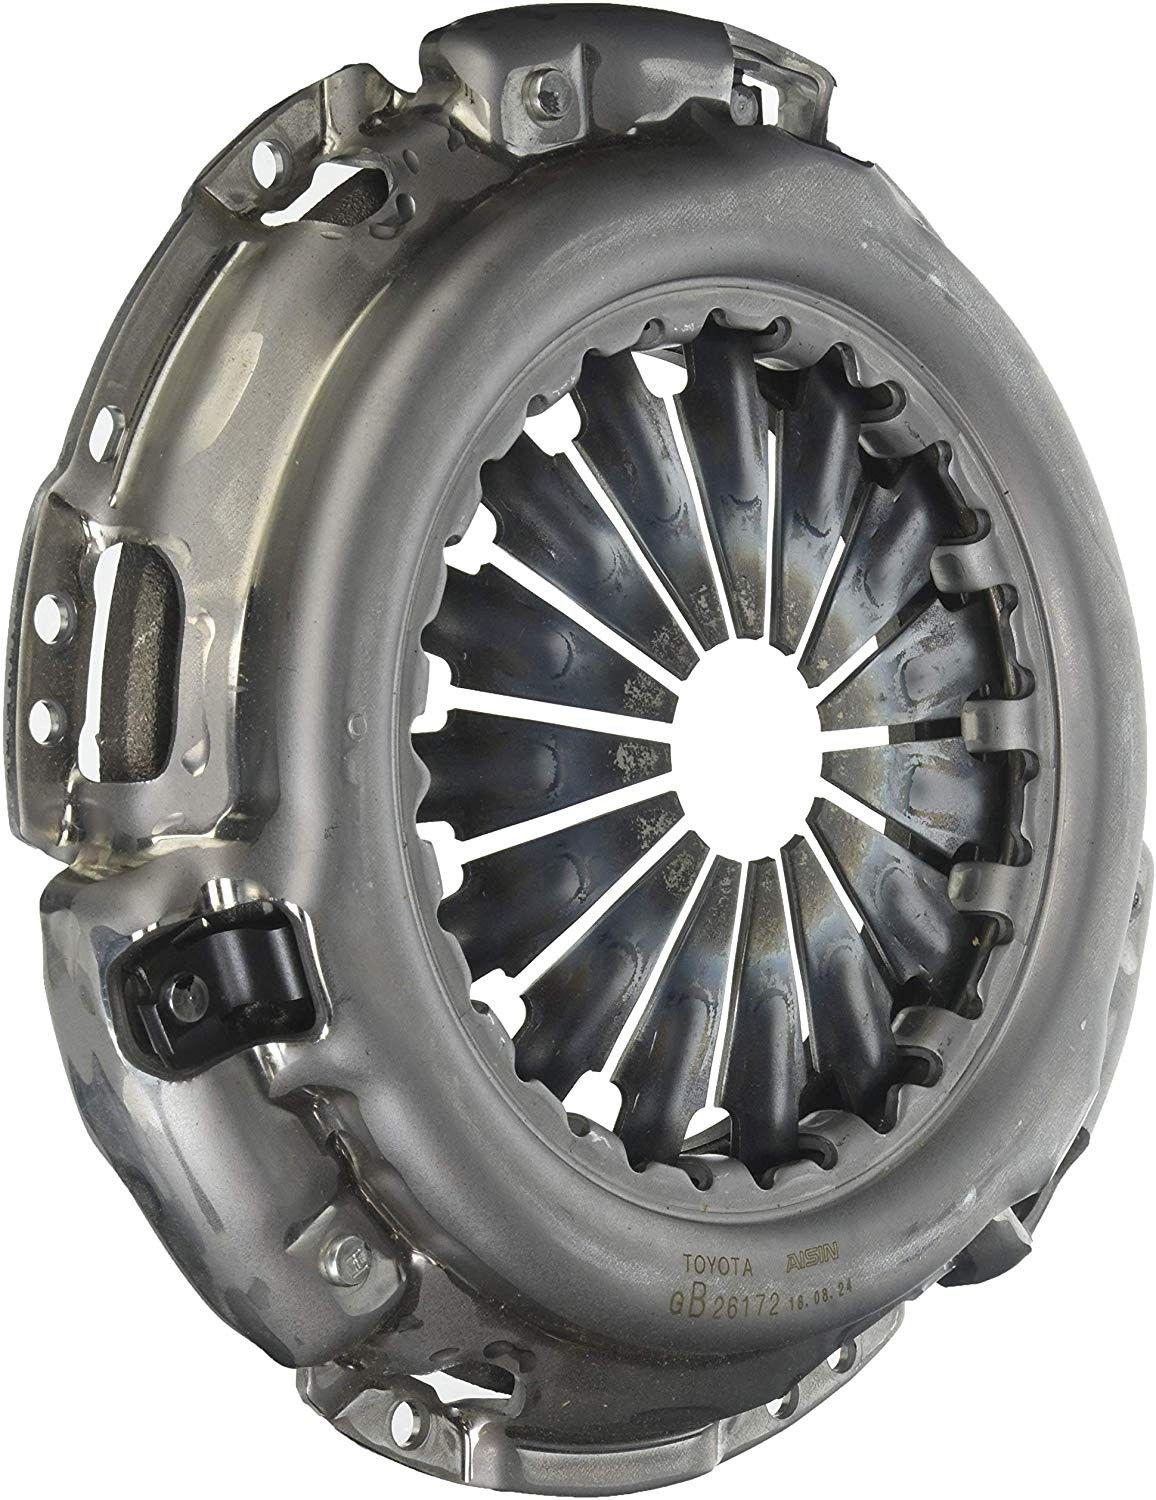 Luk Clutch Pressure Plate For TATA 2515 GB50/GB60 without bearing 352 - 1420233200